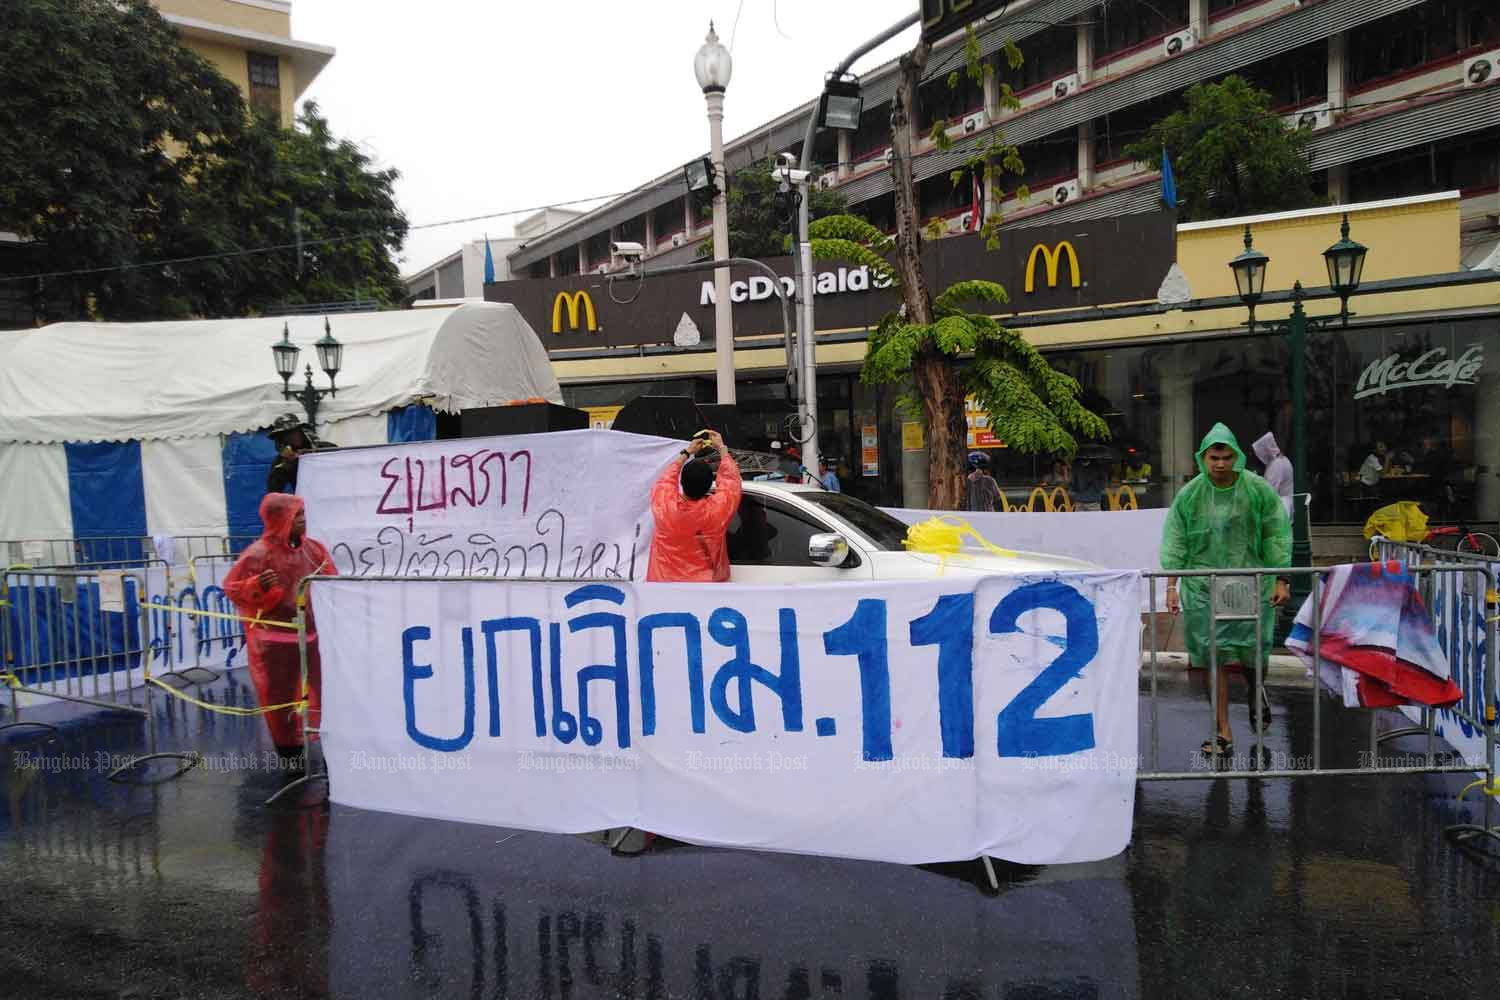 Some demonstrators set up tents occupying one side of Ratchadamnoen Avenue in Bangkok on Tuesday, spreading a banner calling for the repeal of Section 112 of the Criminal Code that protects the royal institution. (Photo by Pornprom Satrabhaya)